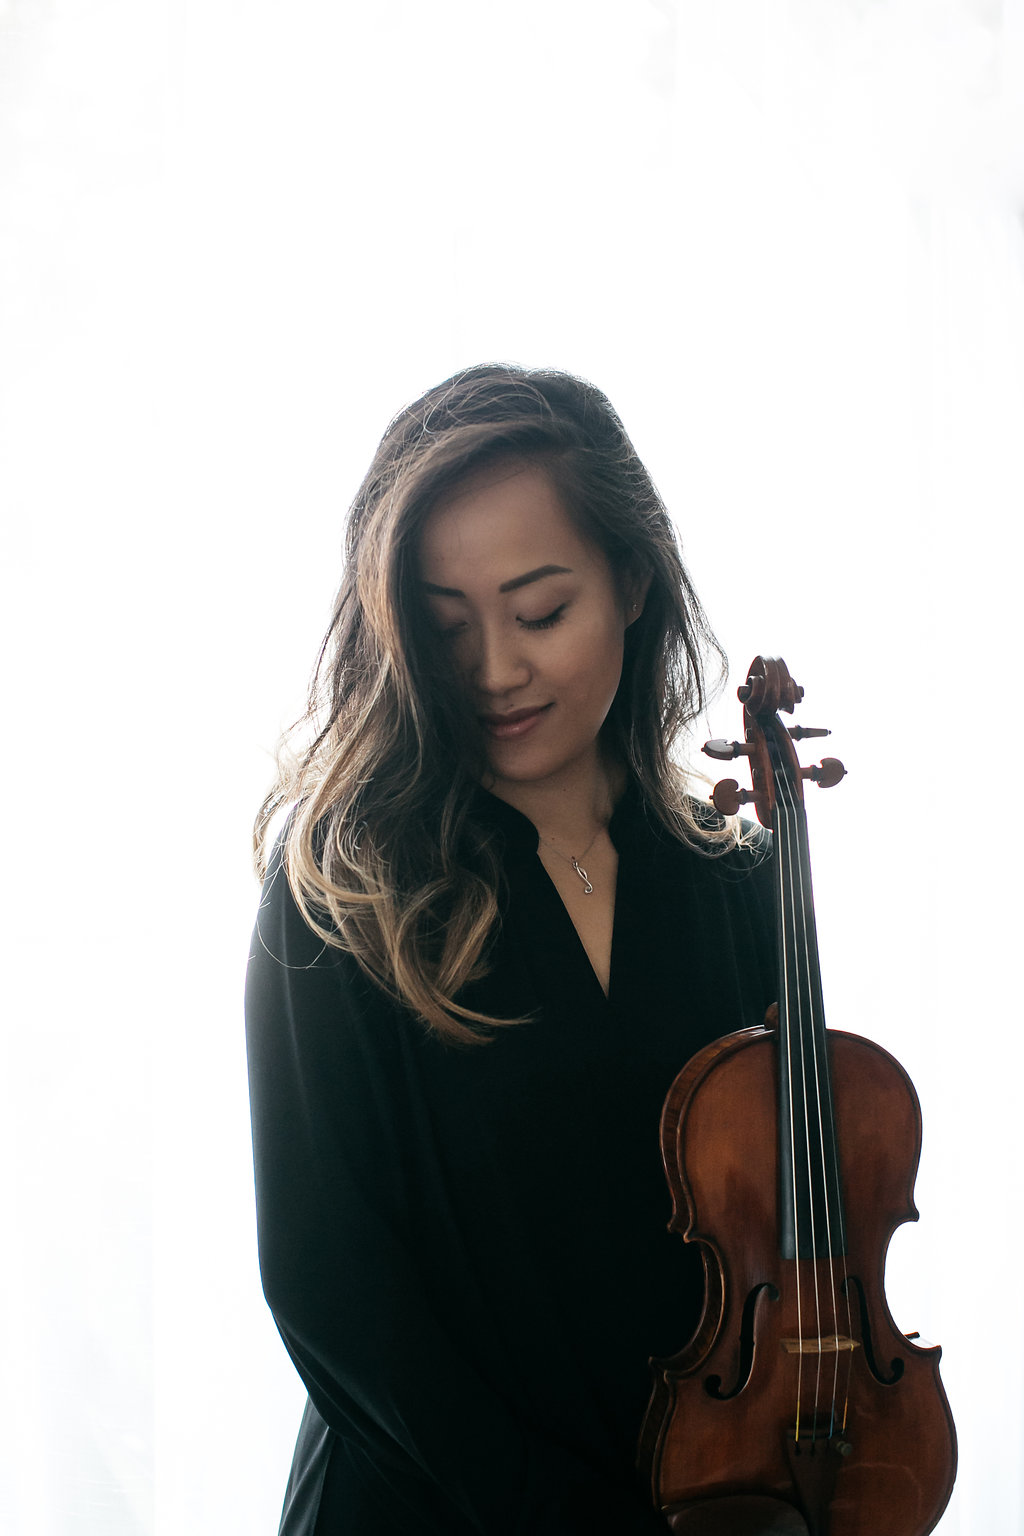 About Melody - Violinist